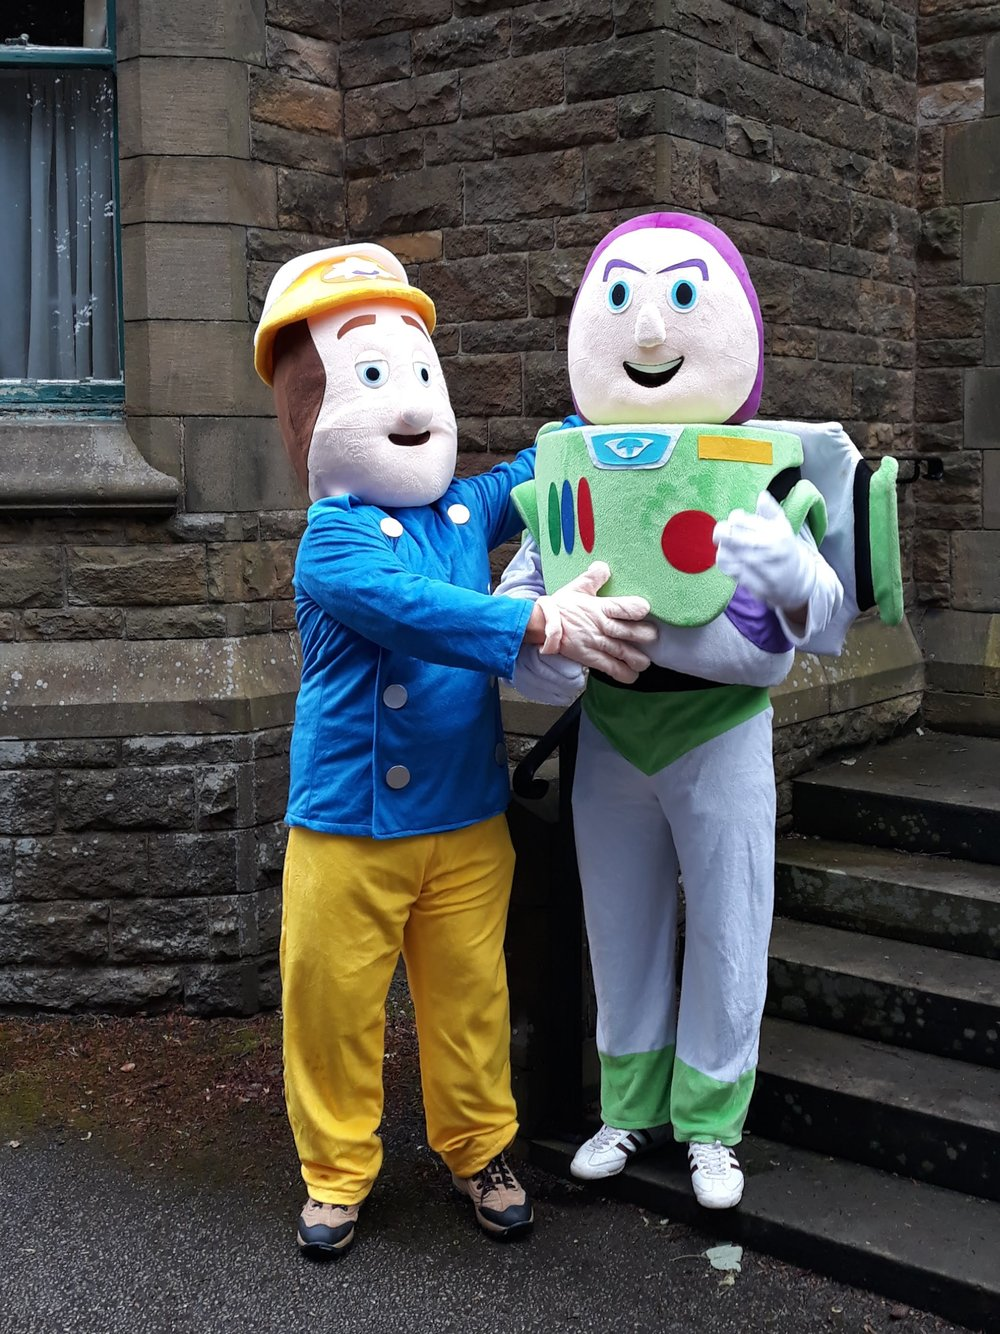 Enlisting the support of Buzz Lightyear and Fireman Sam for the parish fair and fundraising initiatives!